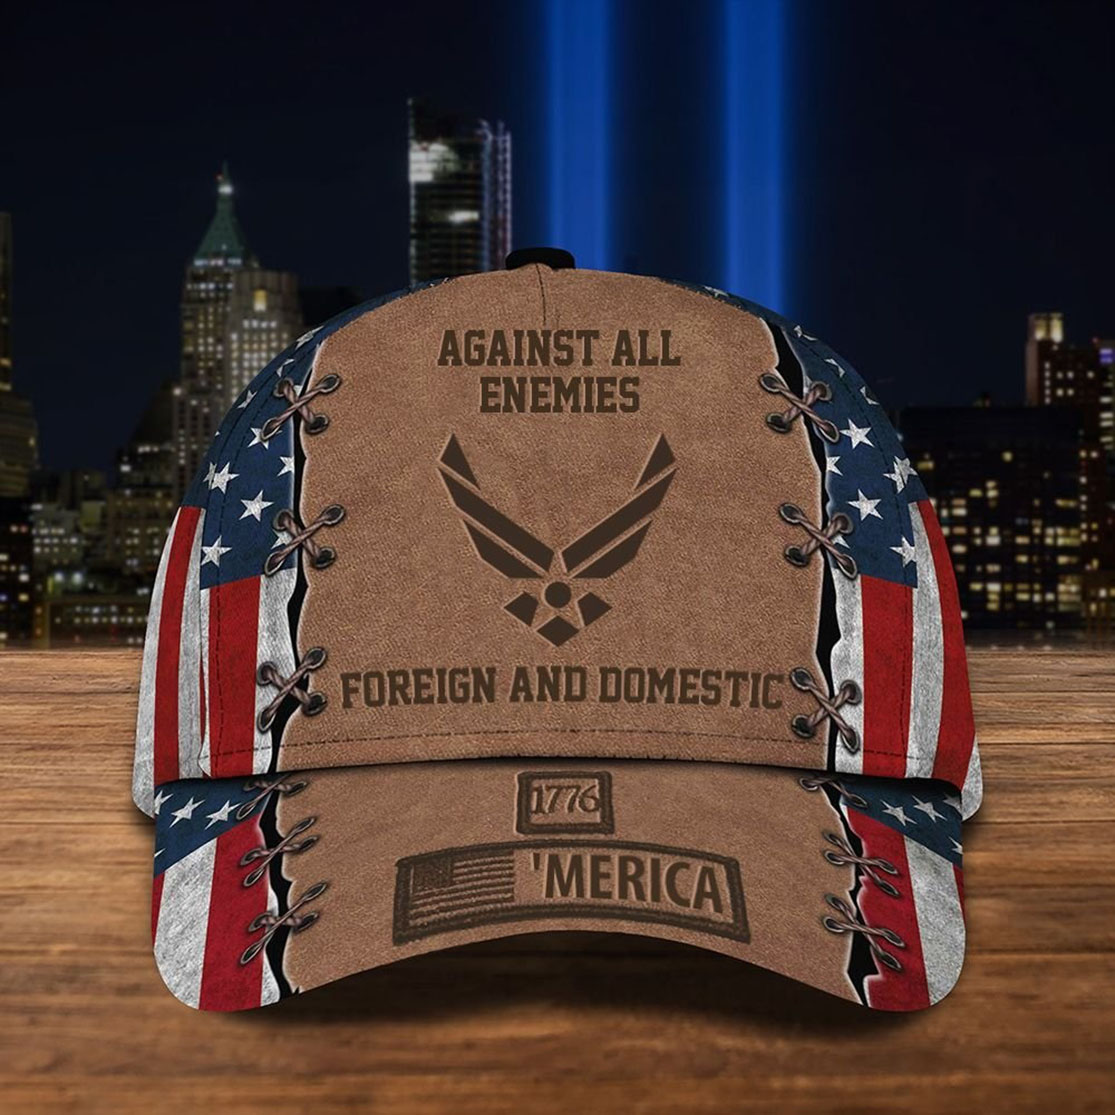 Air Force Hat 1776 'Merica Against All Enemies Foreign And Domestic Cap